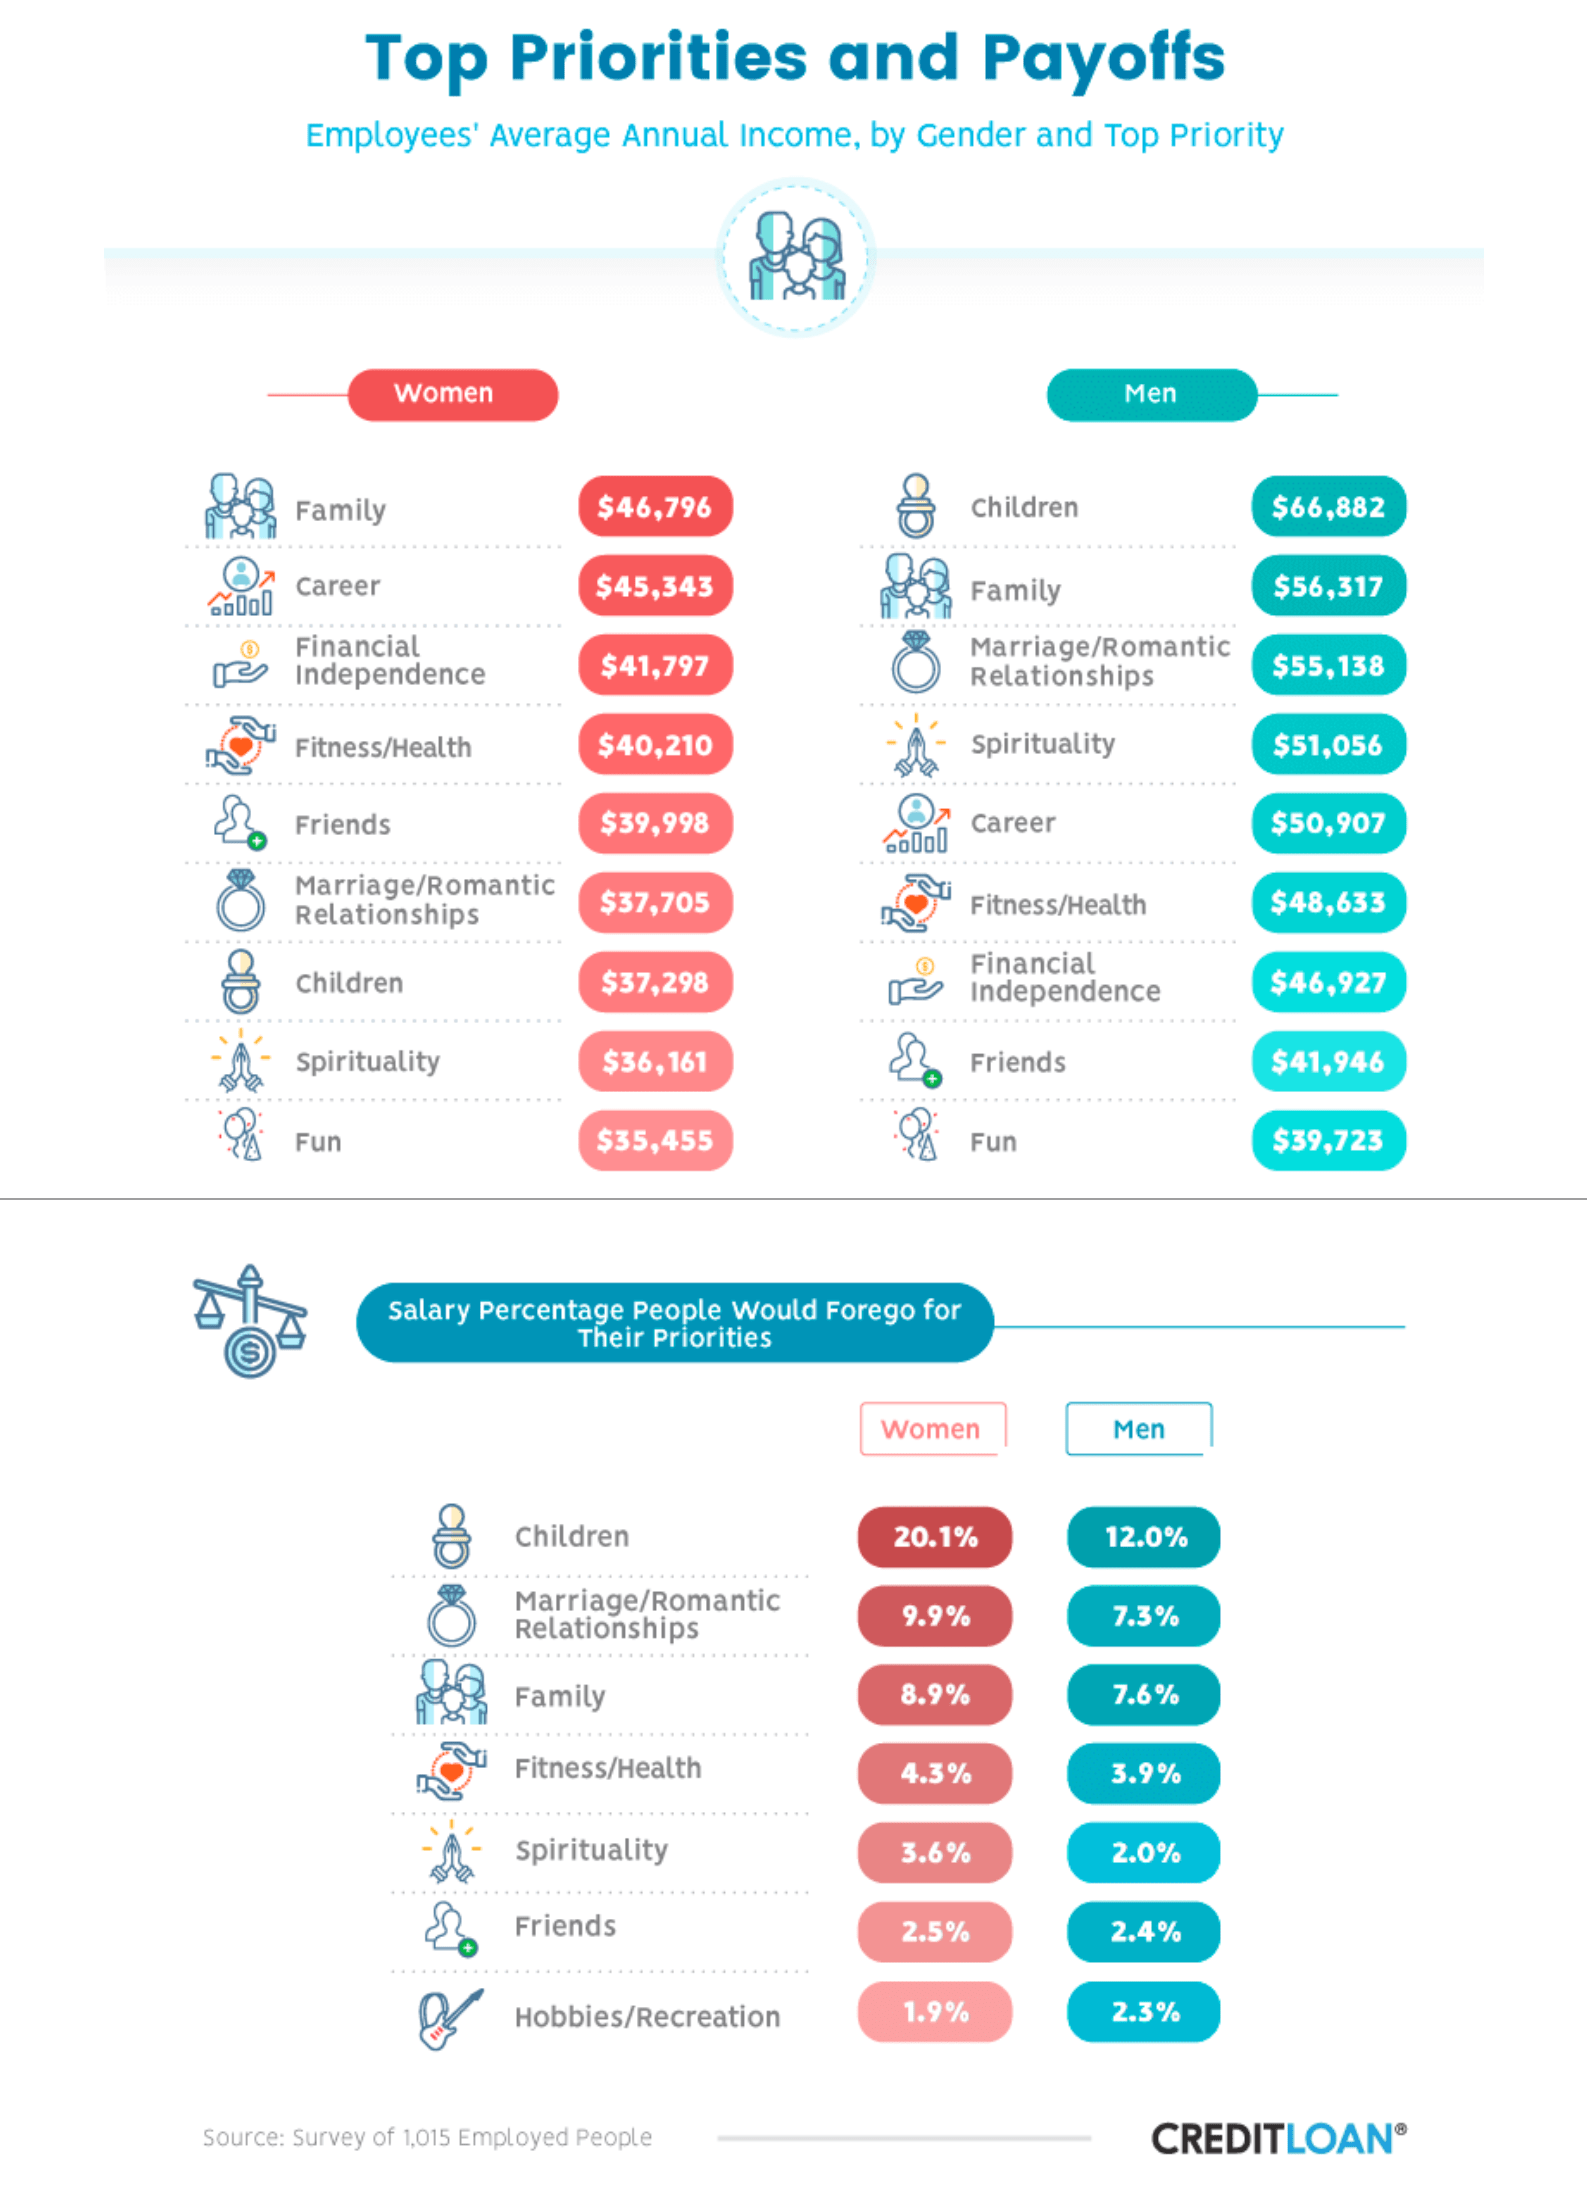 Priorities and payoffs infographic showing average annual income by gender and top priority